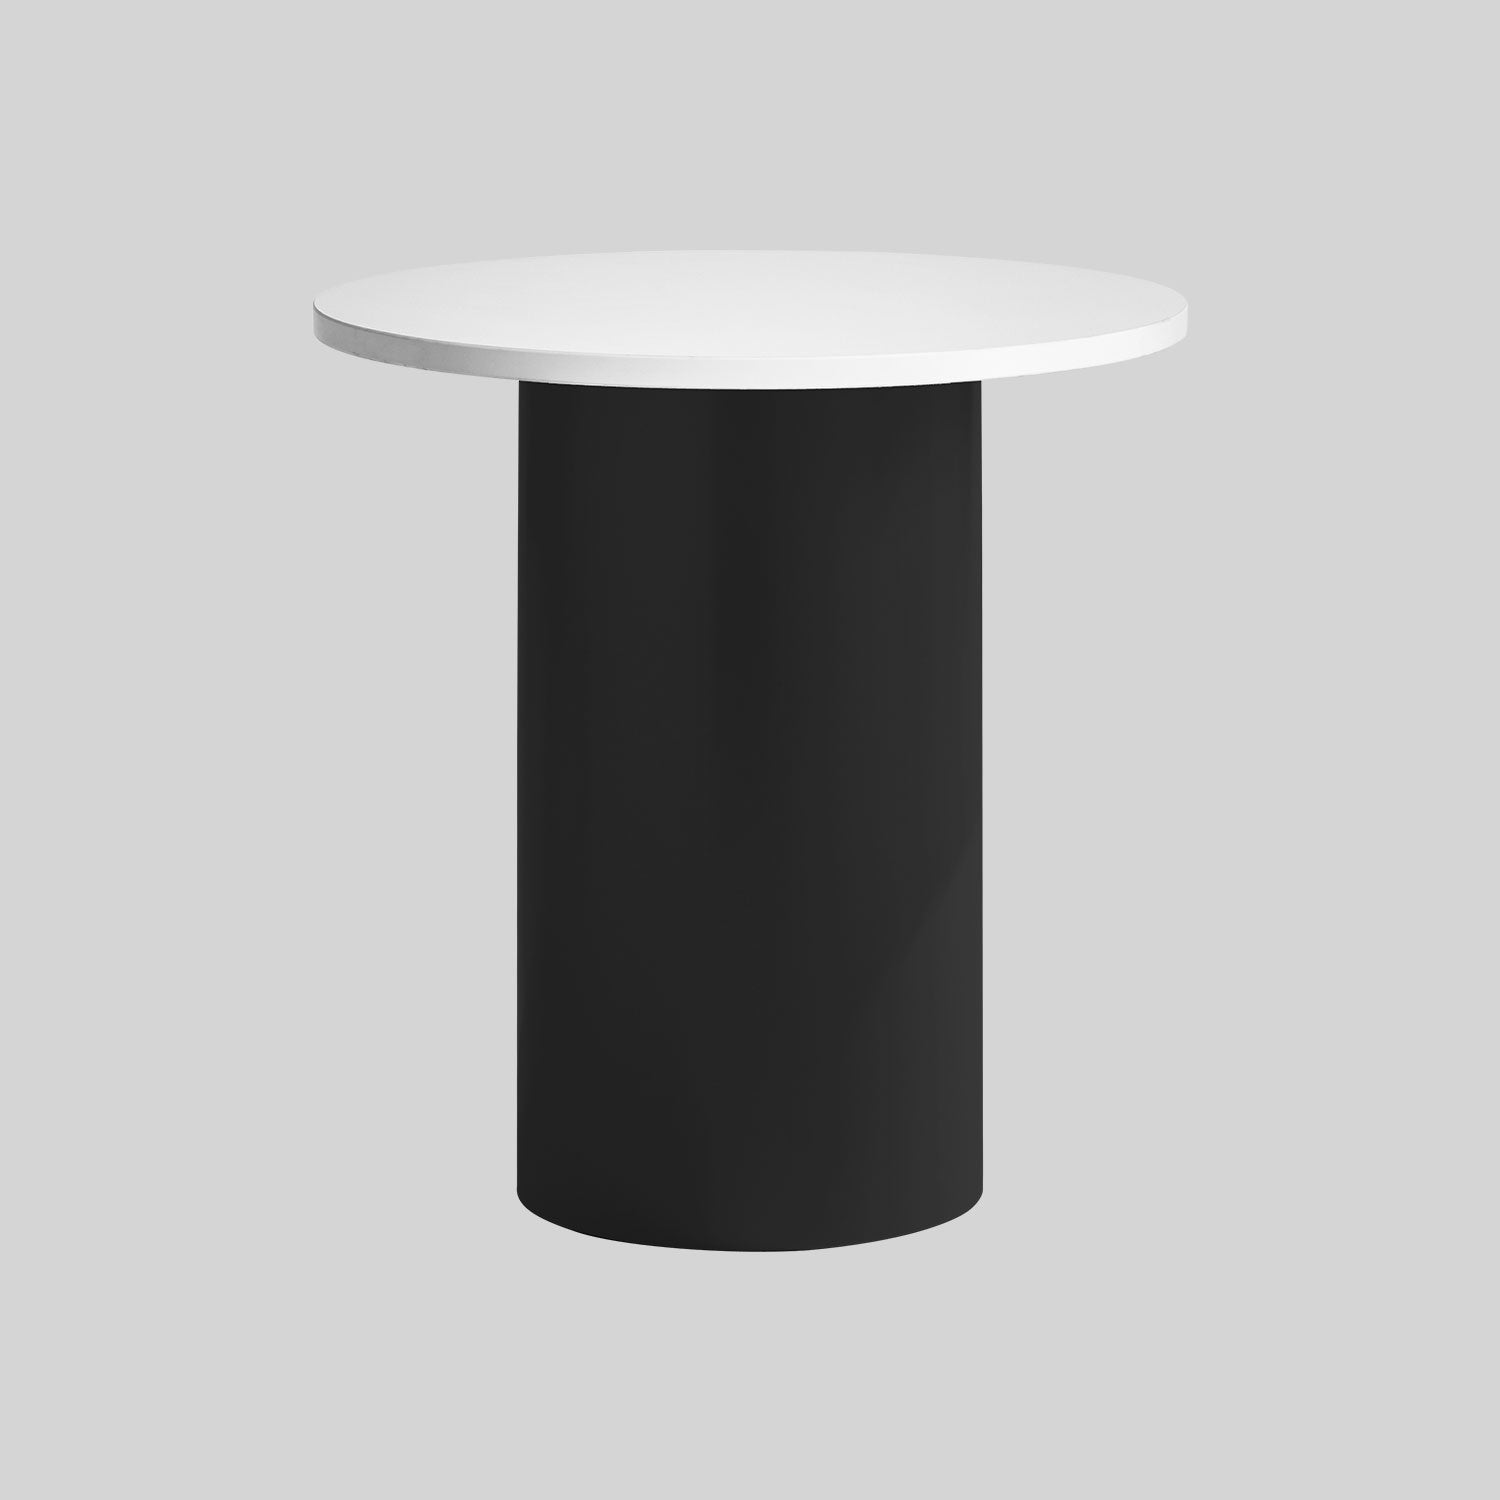 Dial Bar Table | Black, White or Timber Indoor or Outdoor Use | DesignByThem